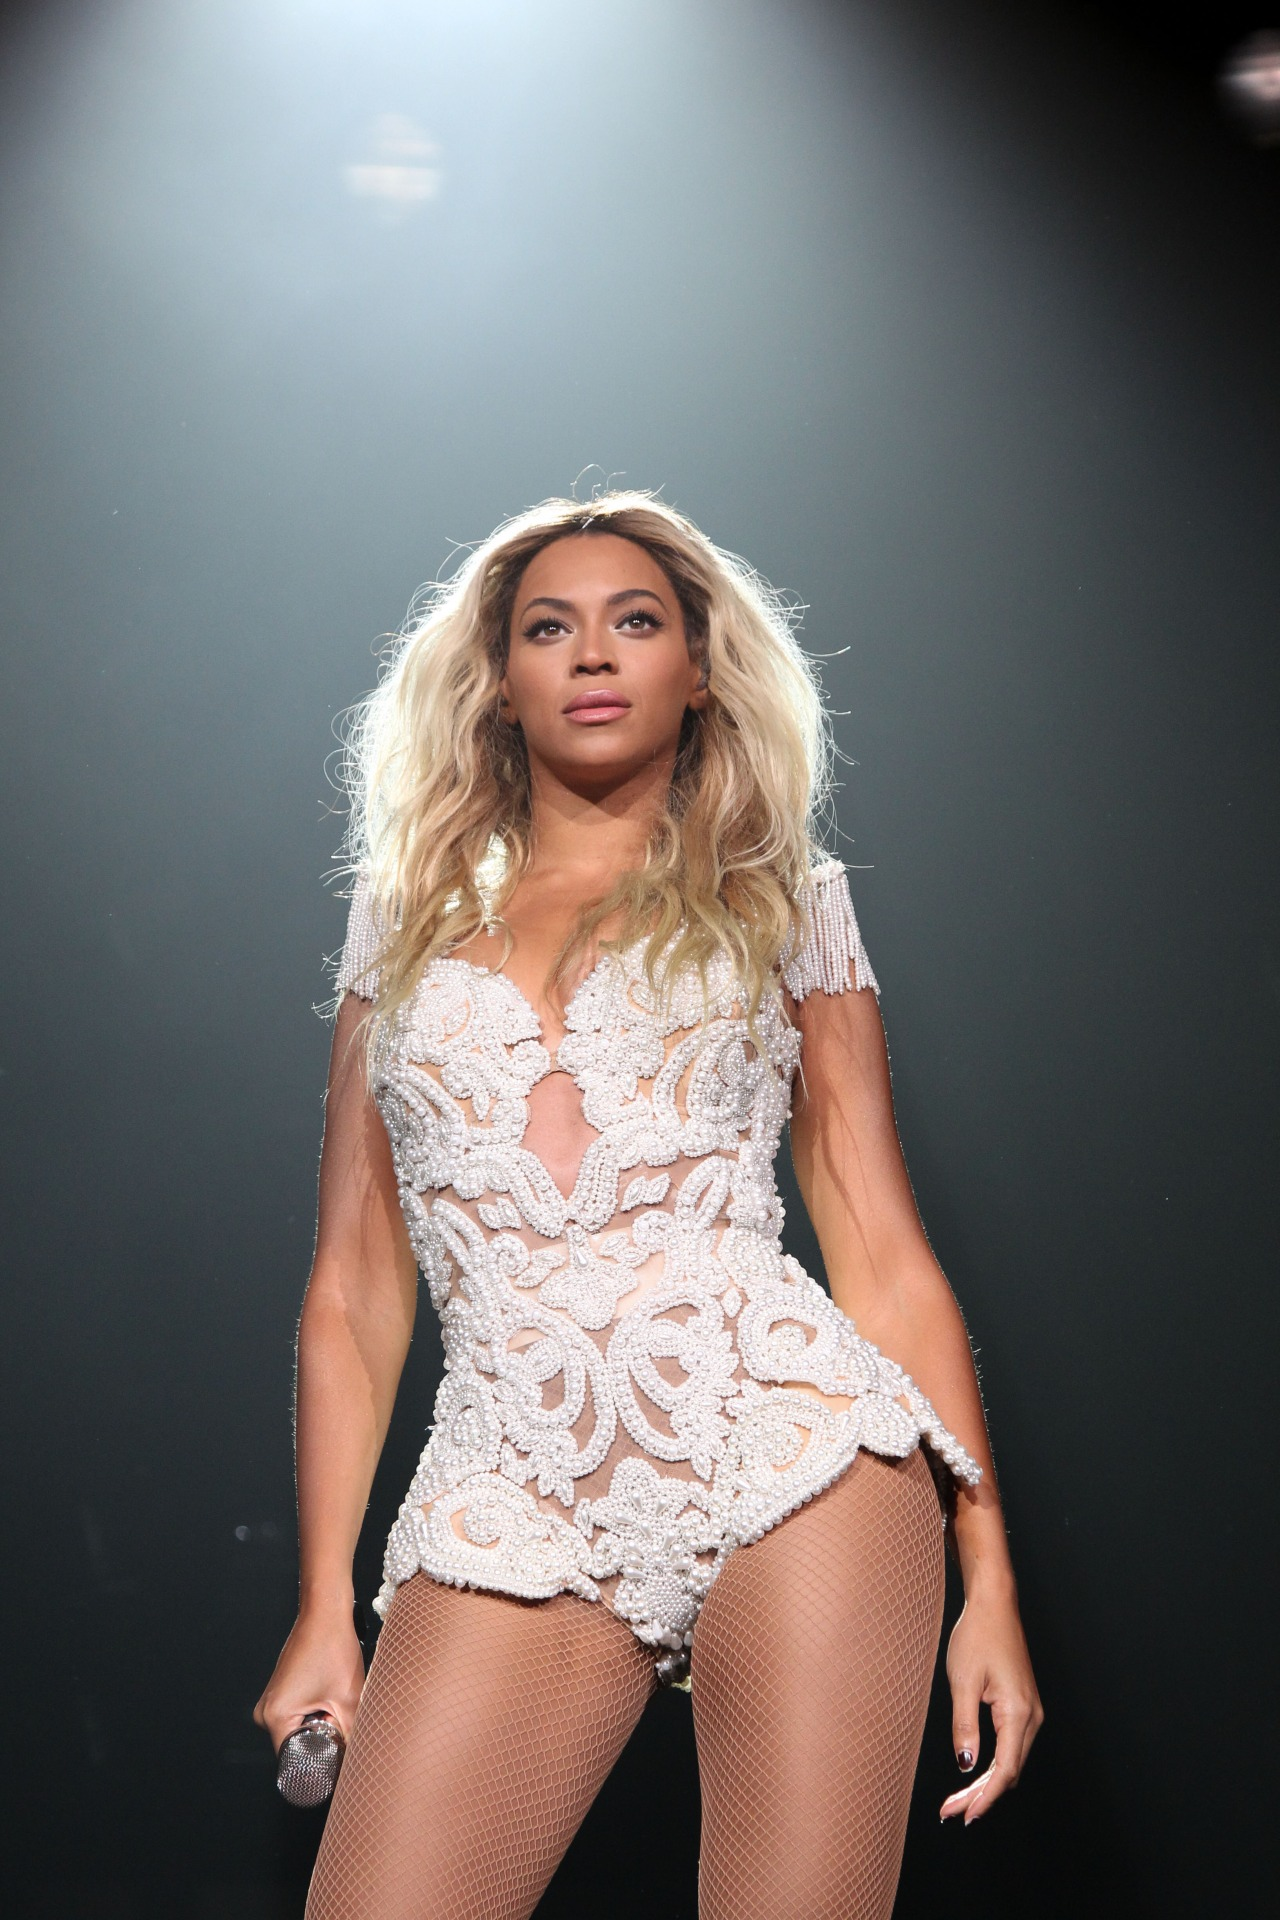 beyonce :     Vancouver, Canada November 2013   Photographed by Nick Farrell